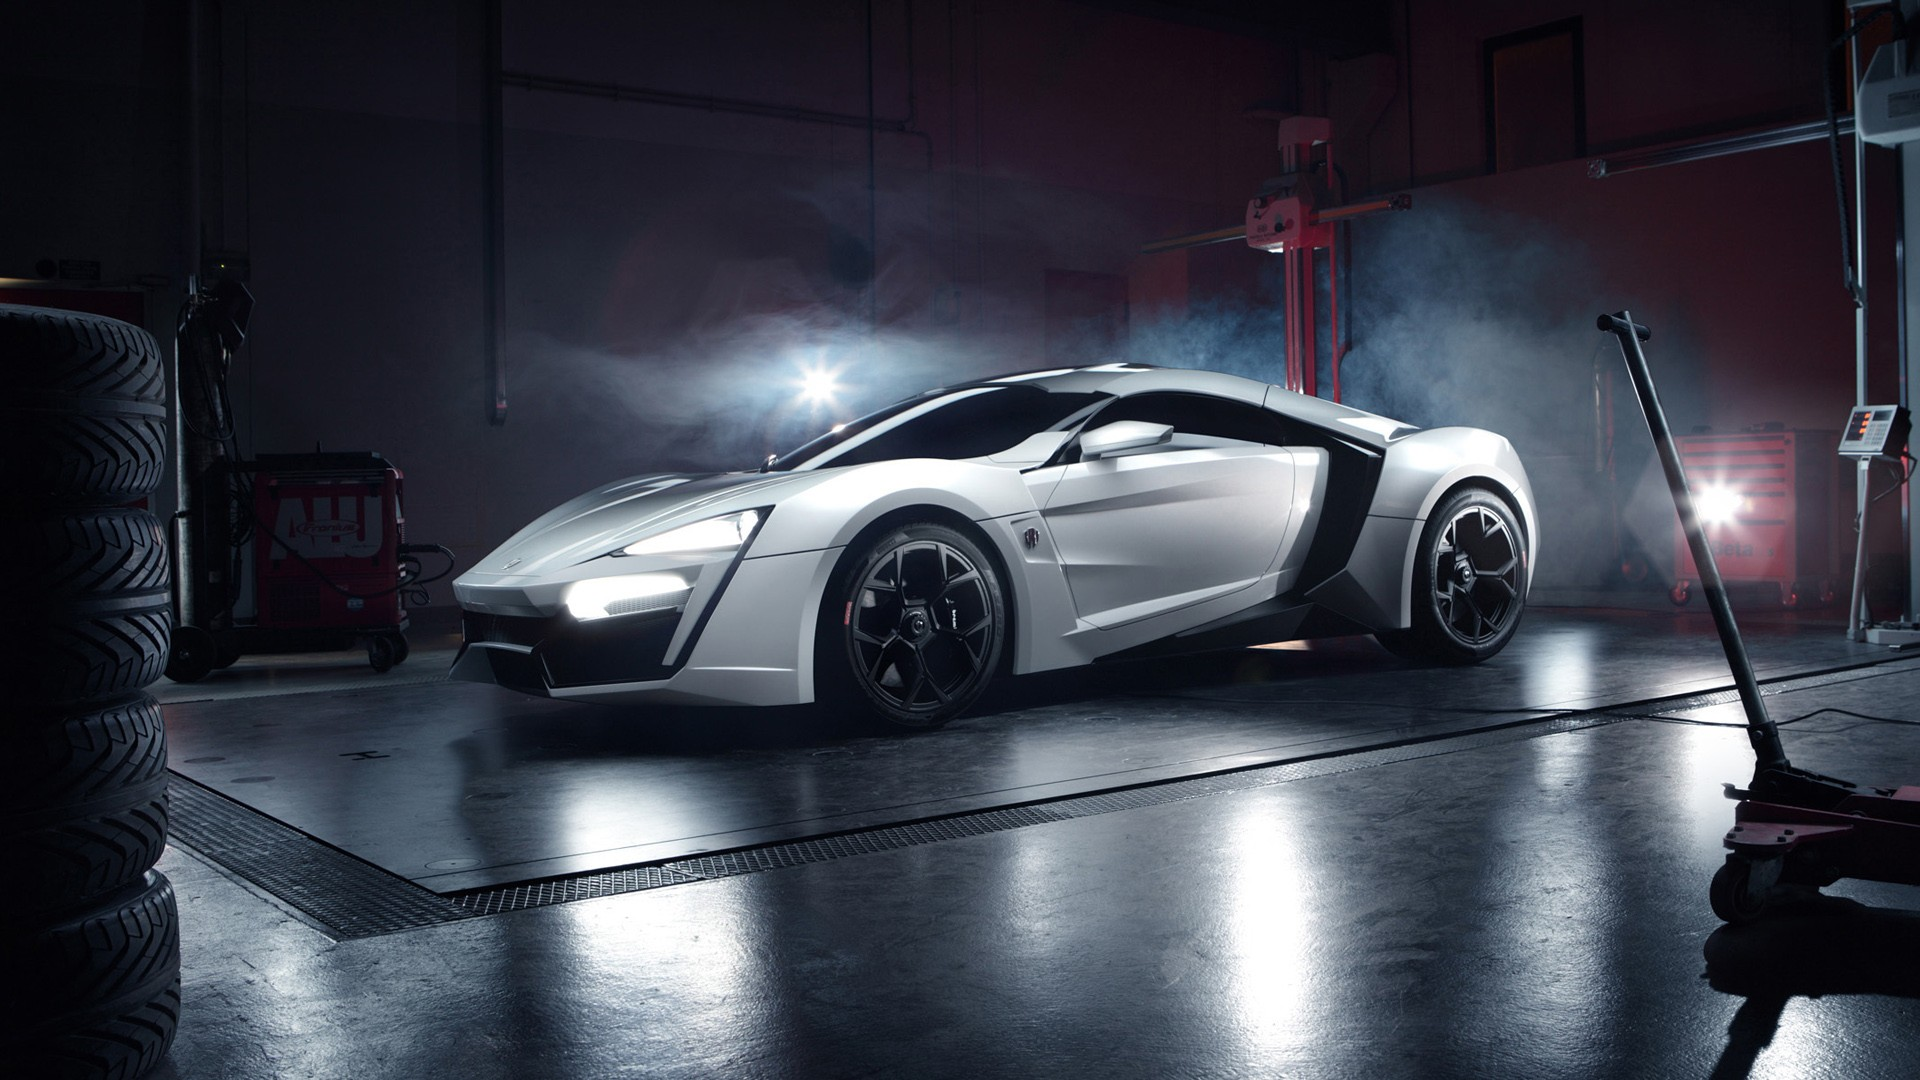 Mazda Car Hd Wallpaper 2013 W Motors Lykan Hypersport Wallpaper Hd Car